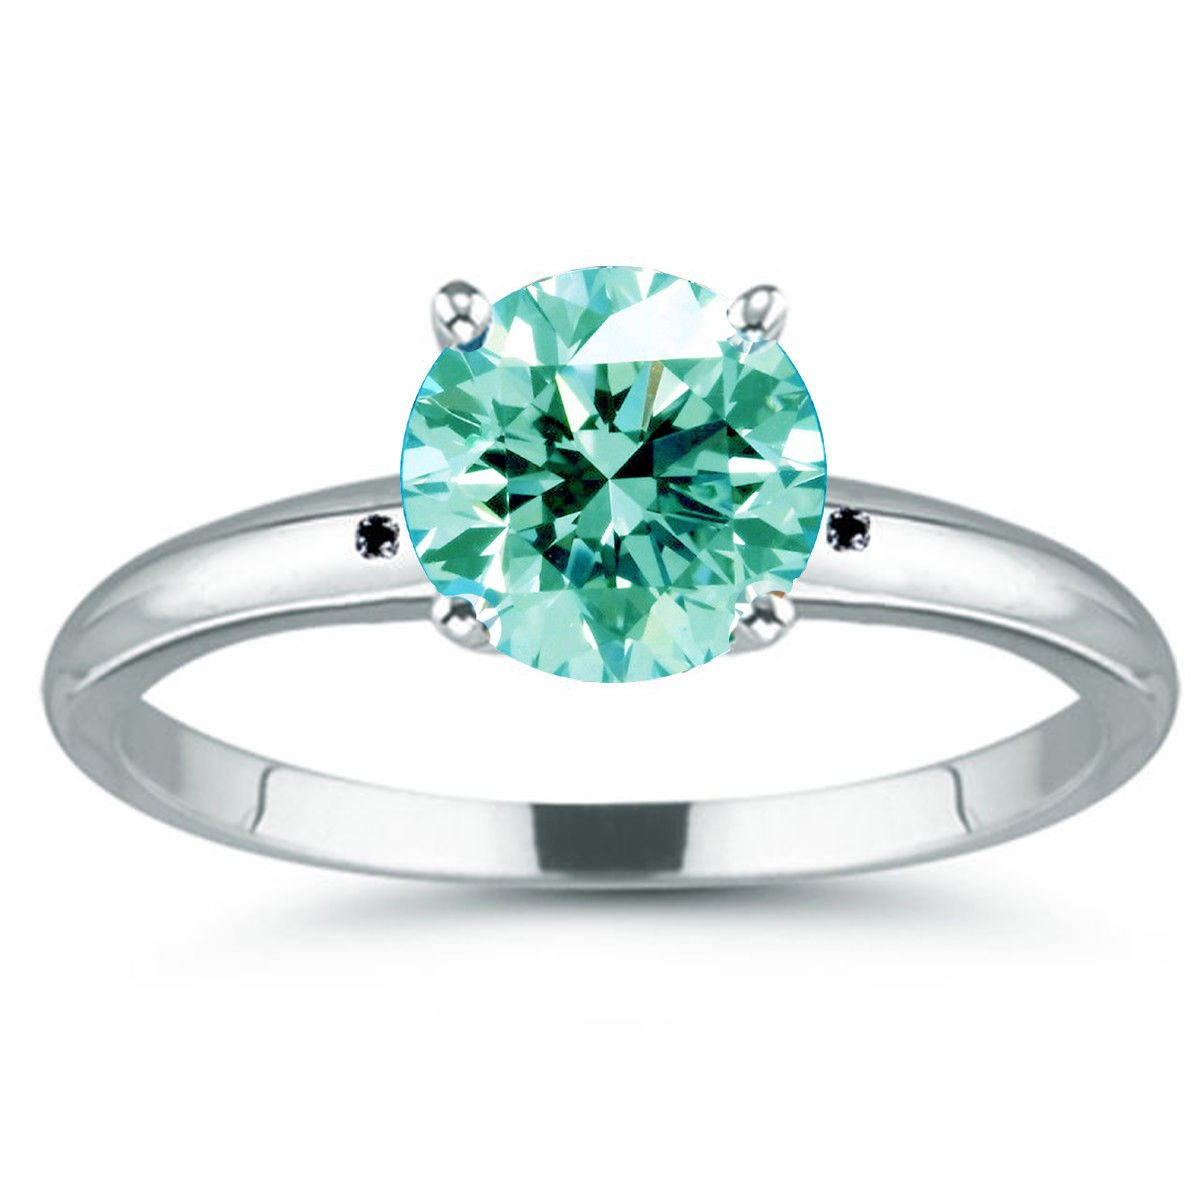 RINGJEWEL 1.76 ct VVS1 Round Moissanite Solitaire Silver Plated Engagement Ring Ice Sky Blue White Color Size 7